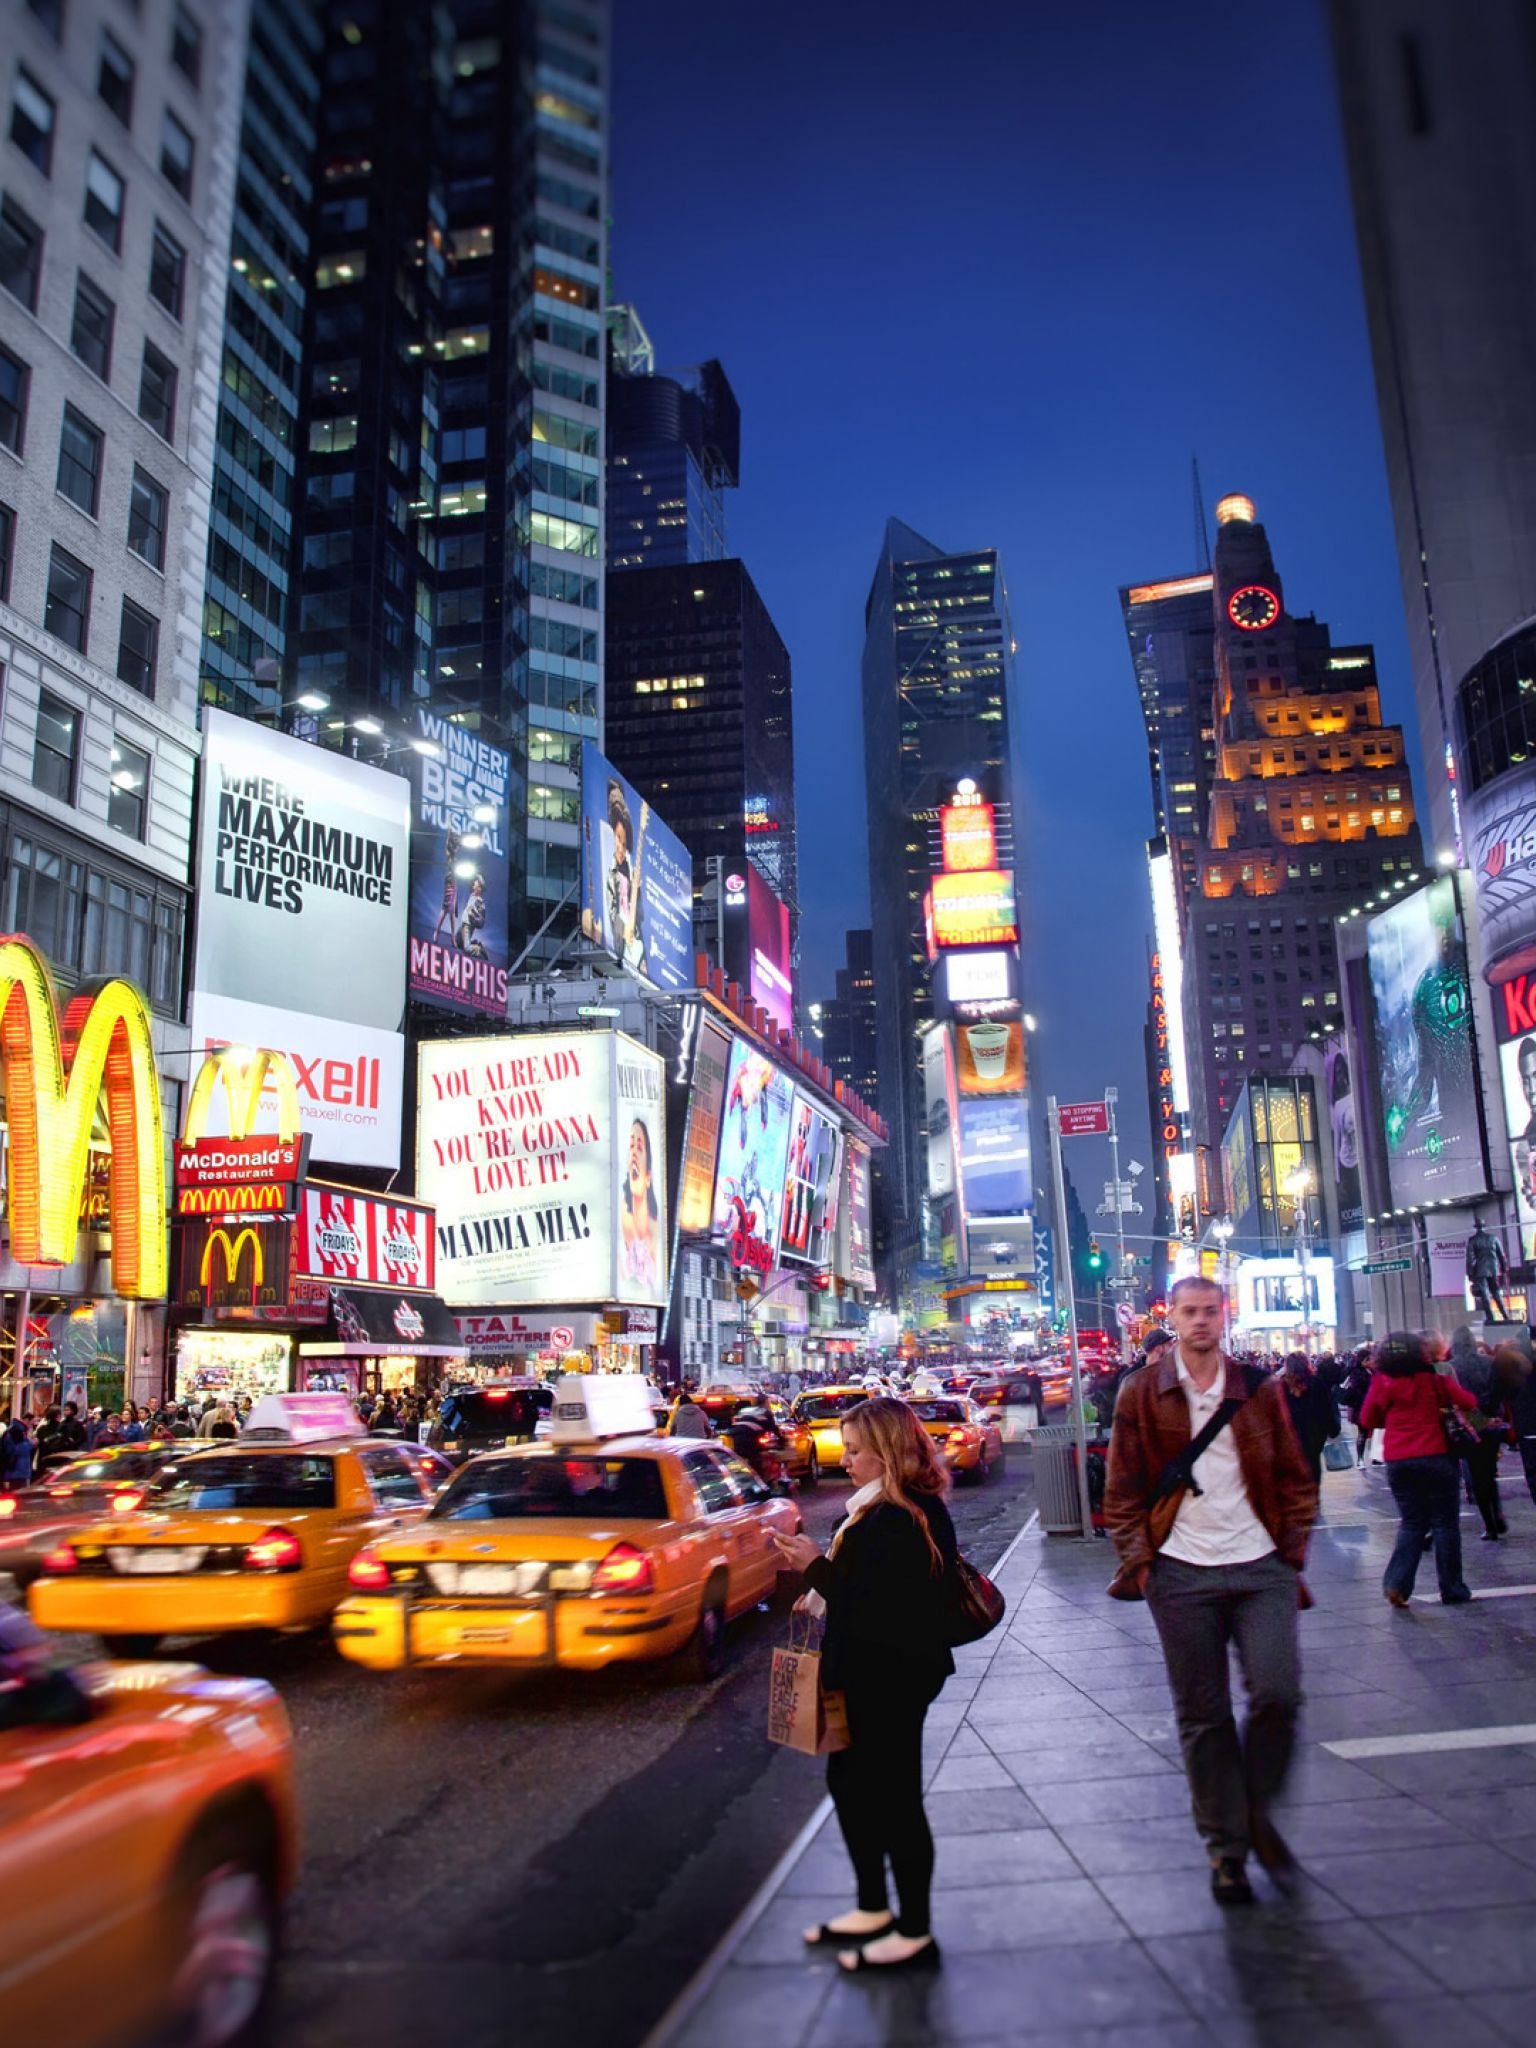 descriptive essays on new york city - semi-descriptive essay on an experience in new york city.